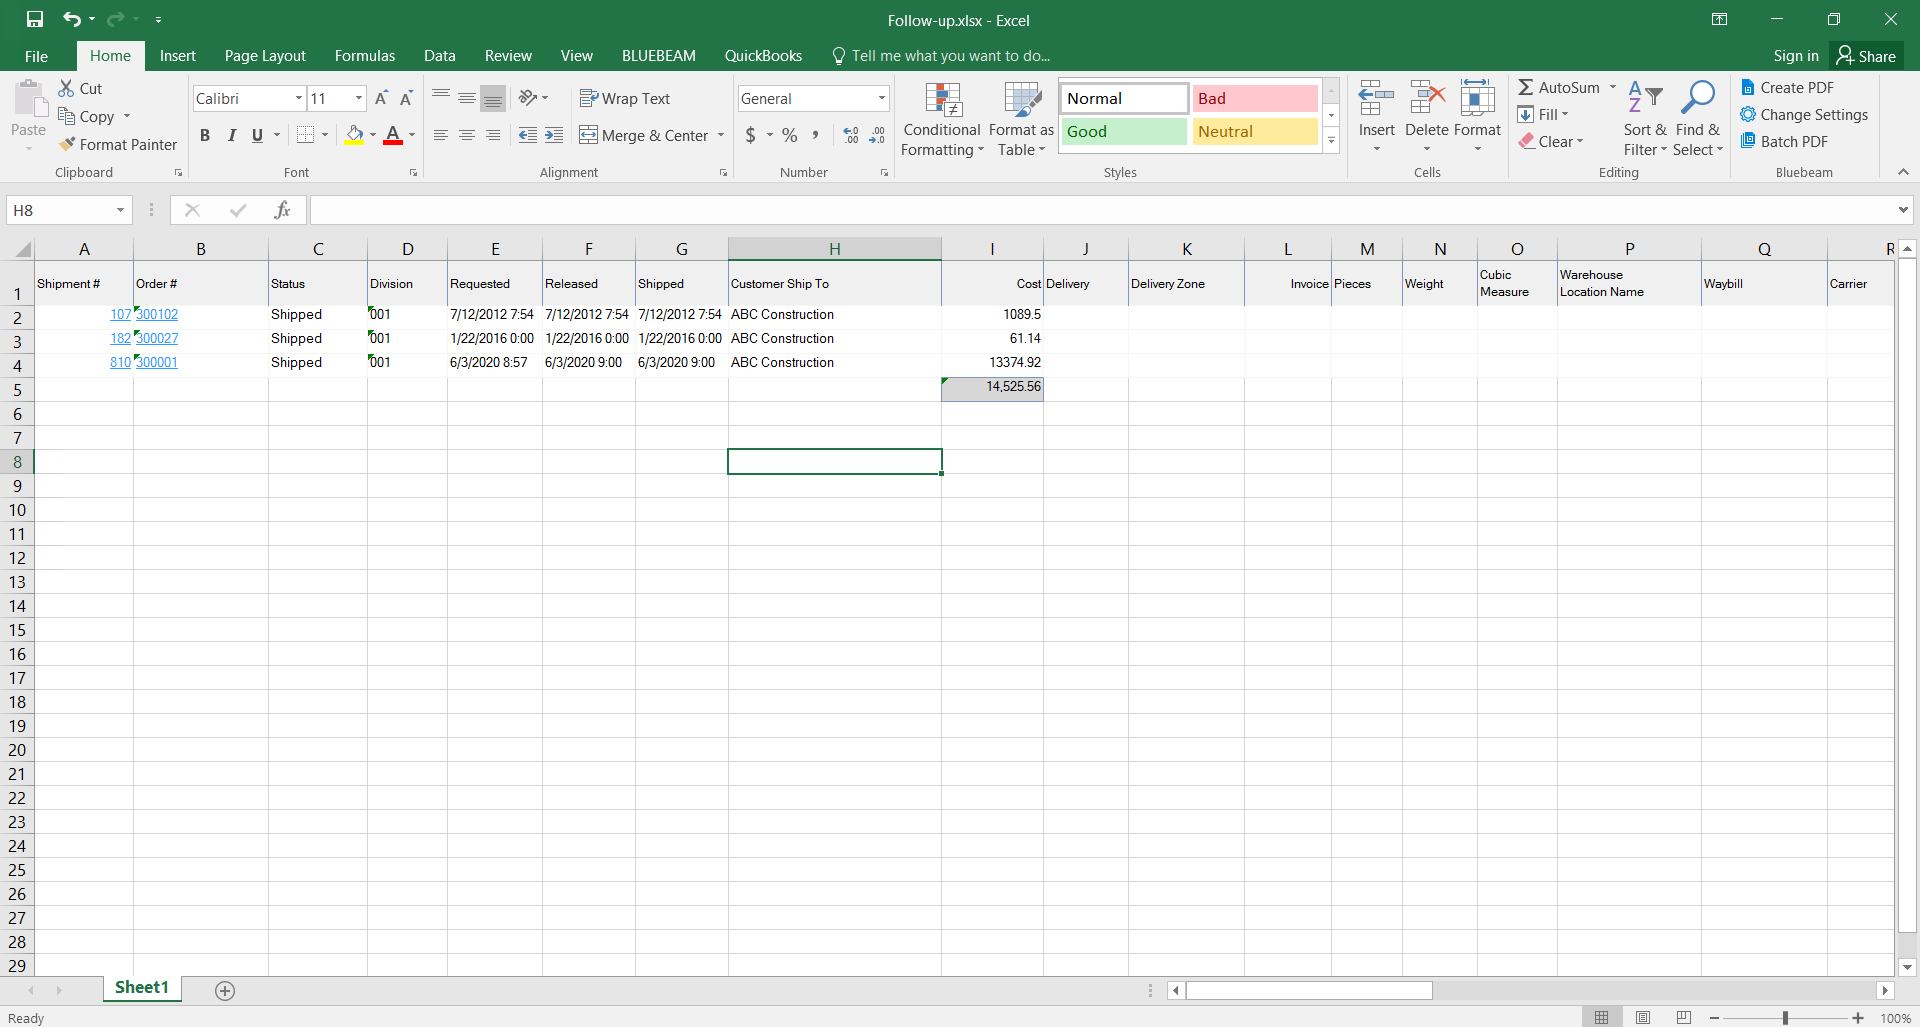 Excel window; shows an example export list.